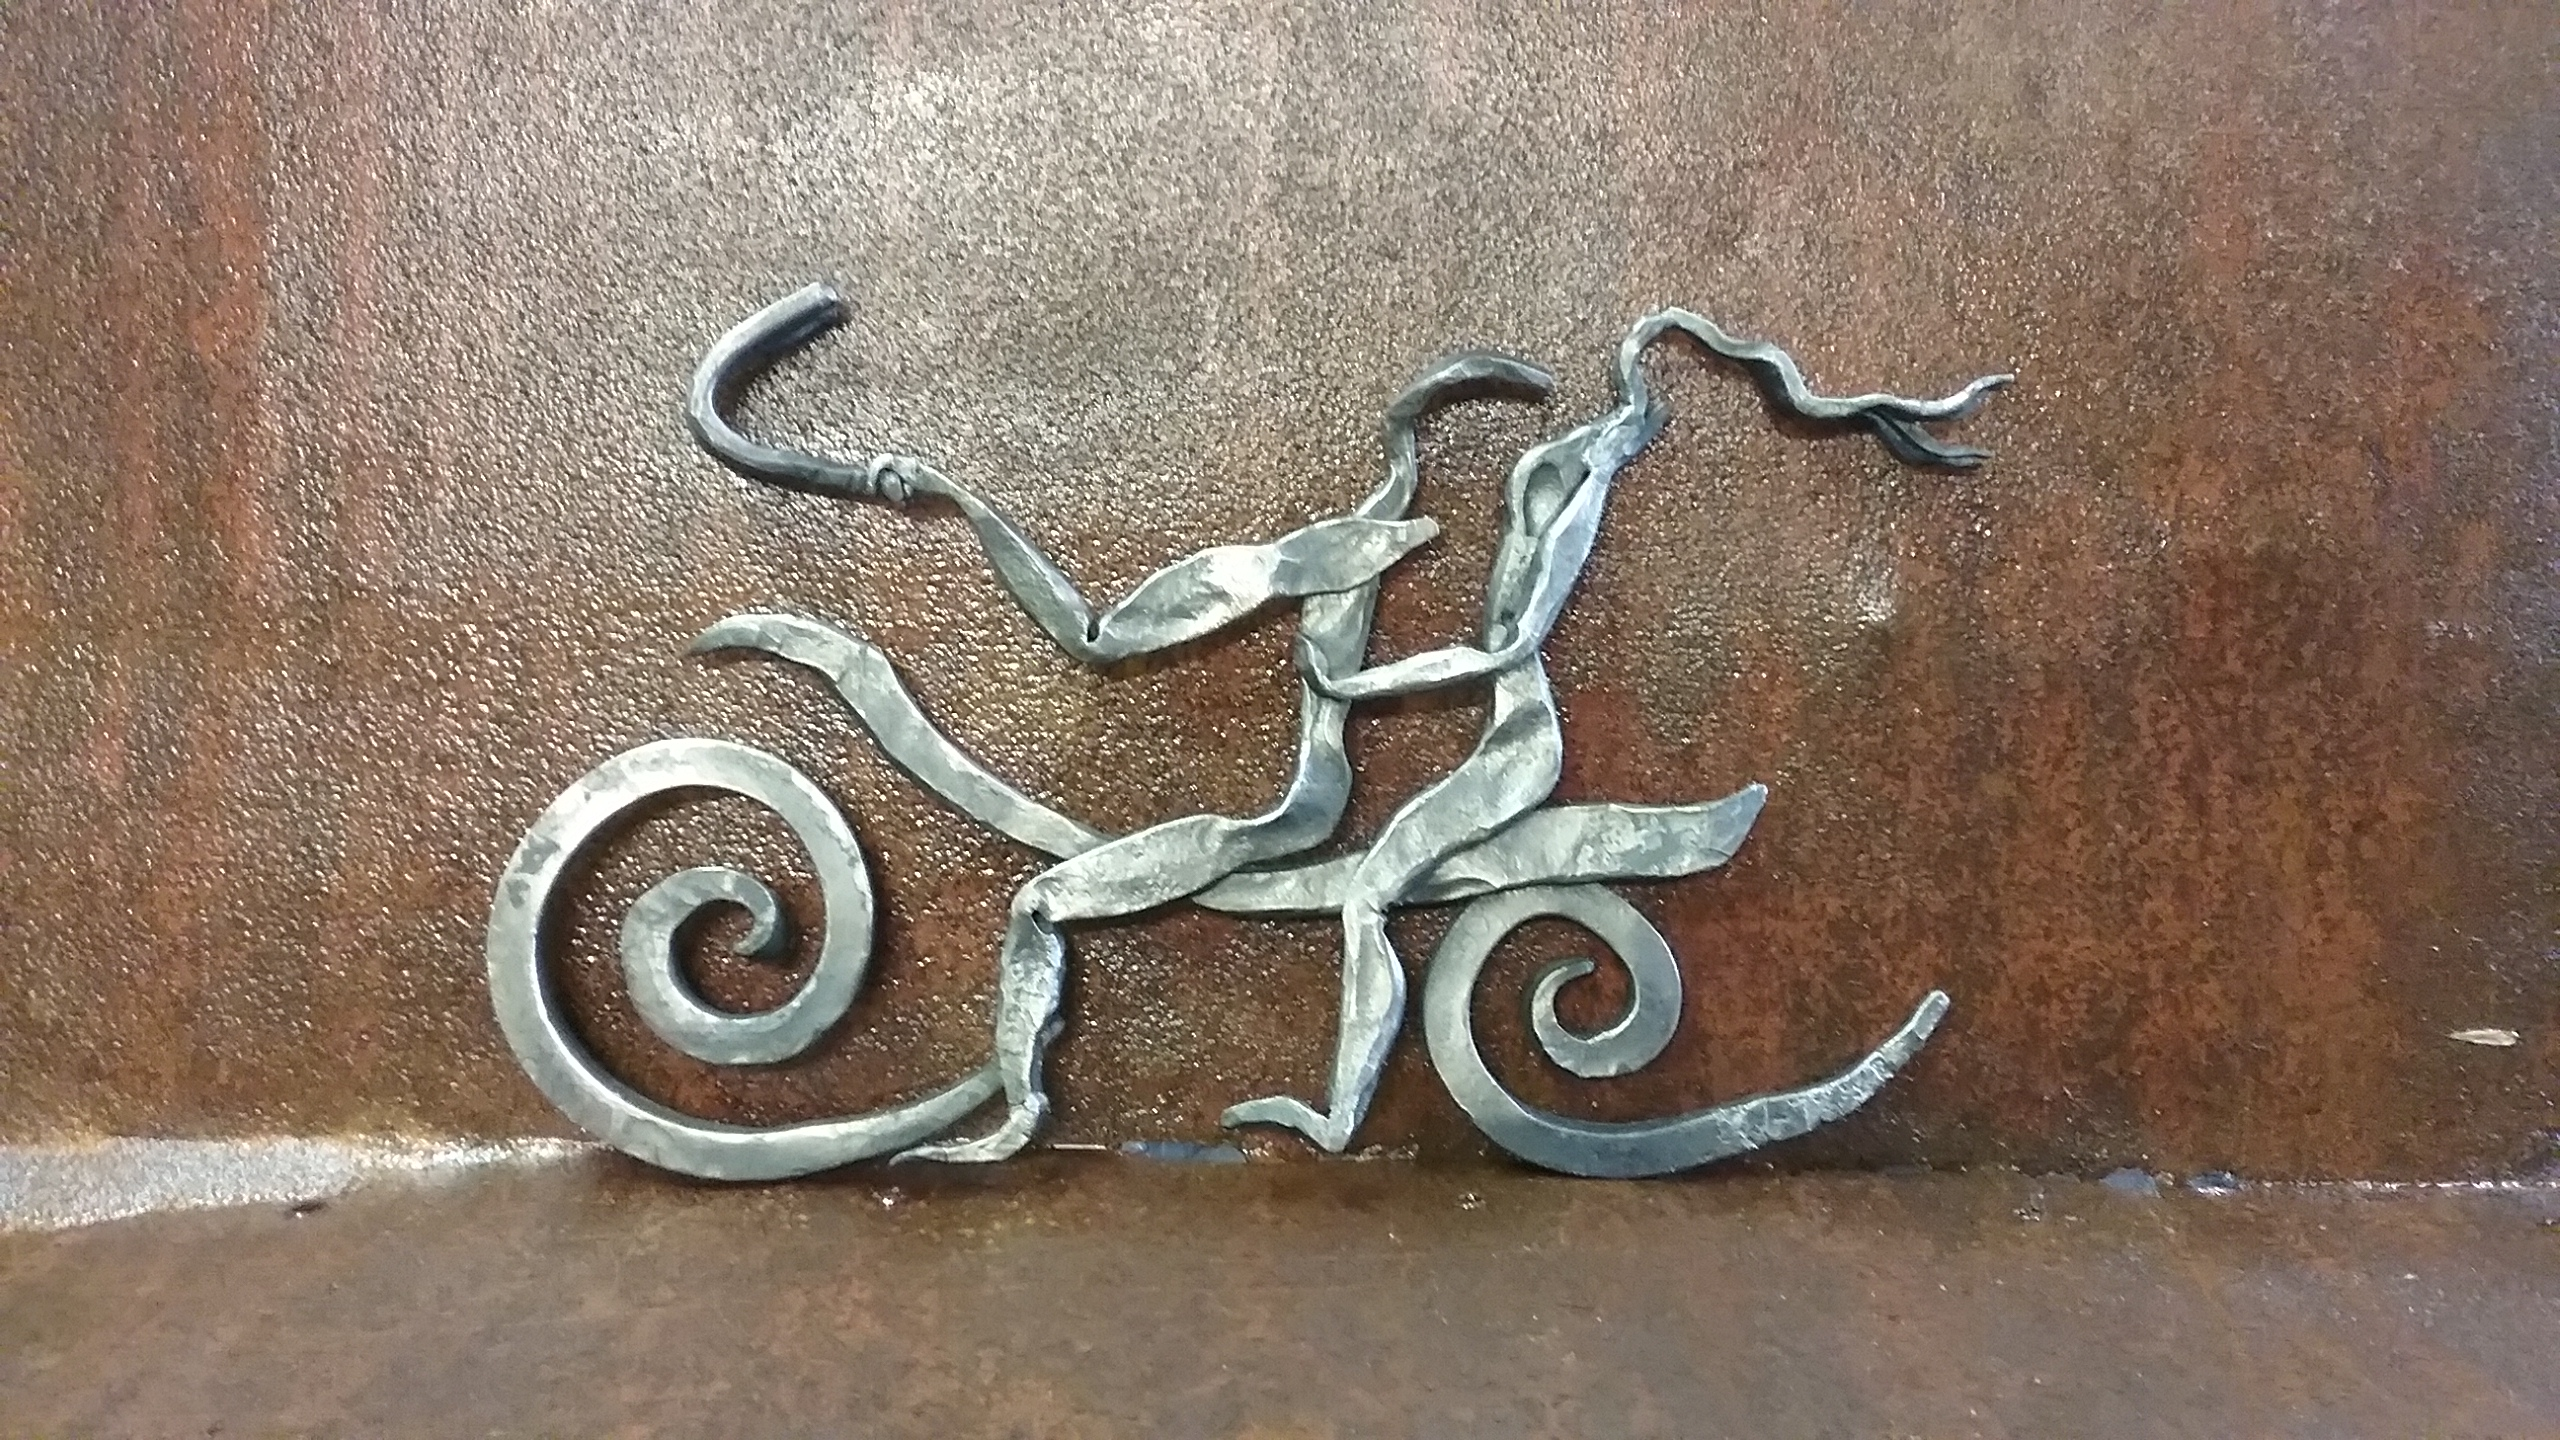 Slow Ride, a hand forged, metal art